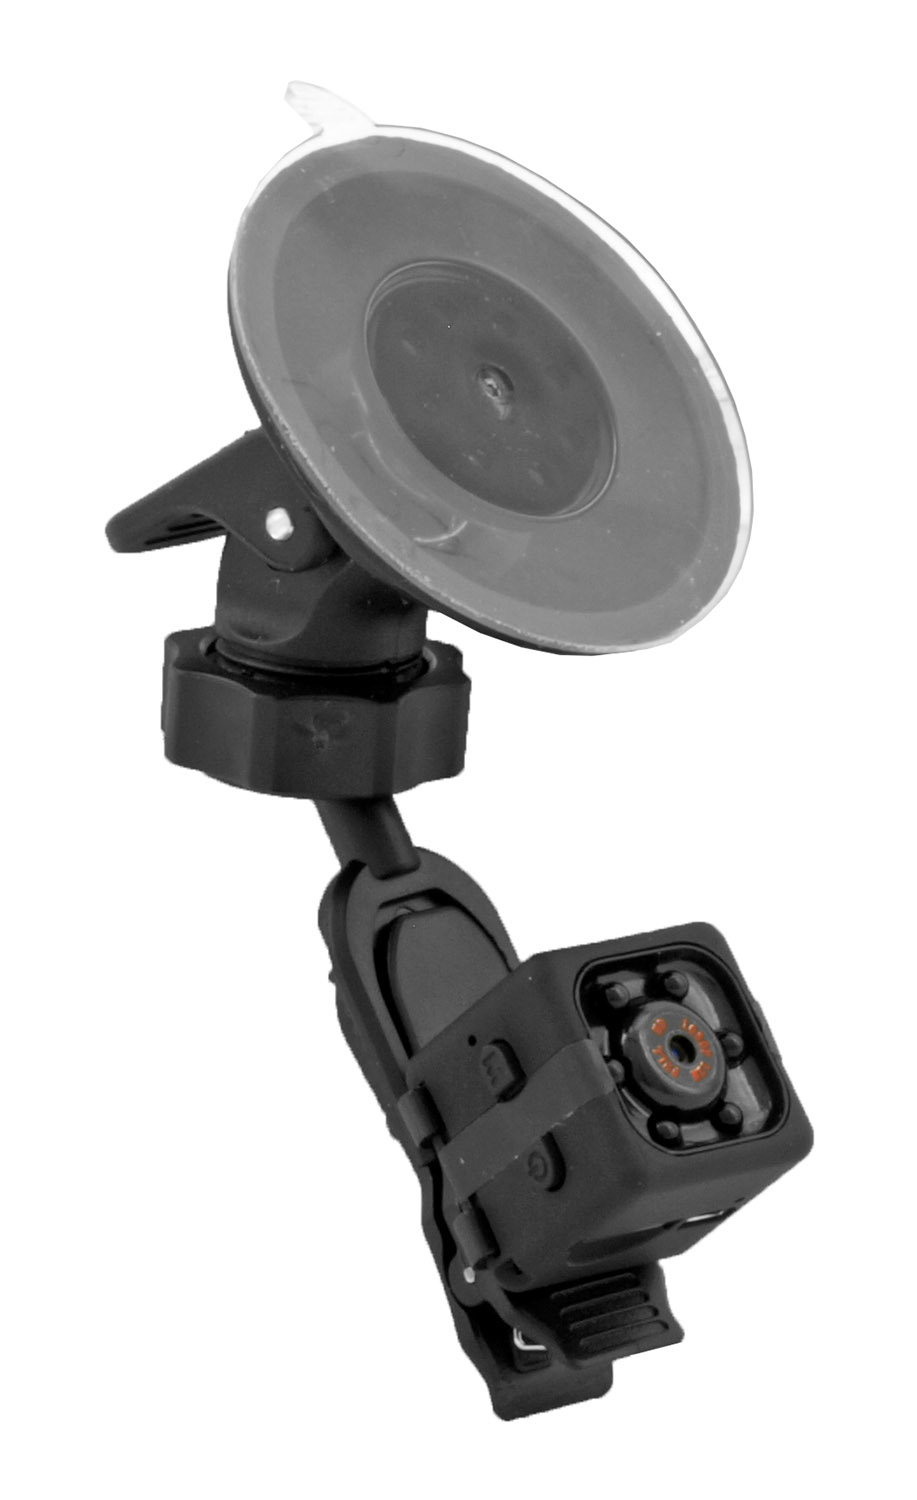 Wal-Mart Brand Onn Mini Car Dash Cam with Suction Cup - Refurbished